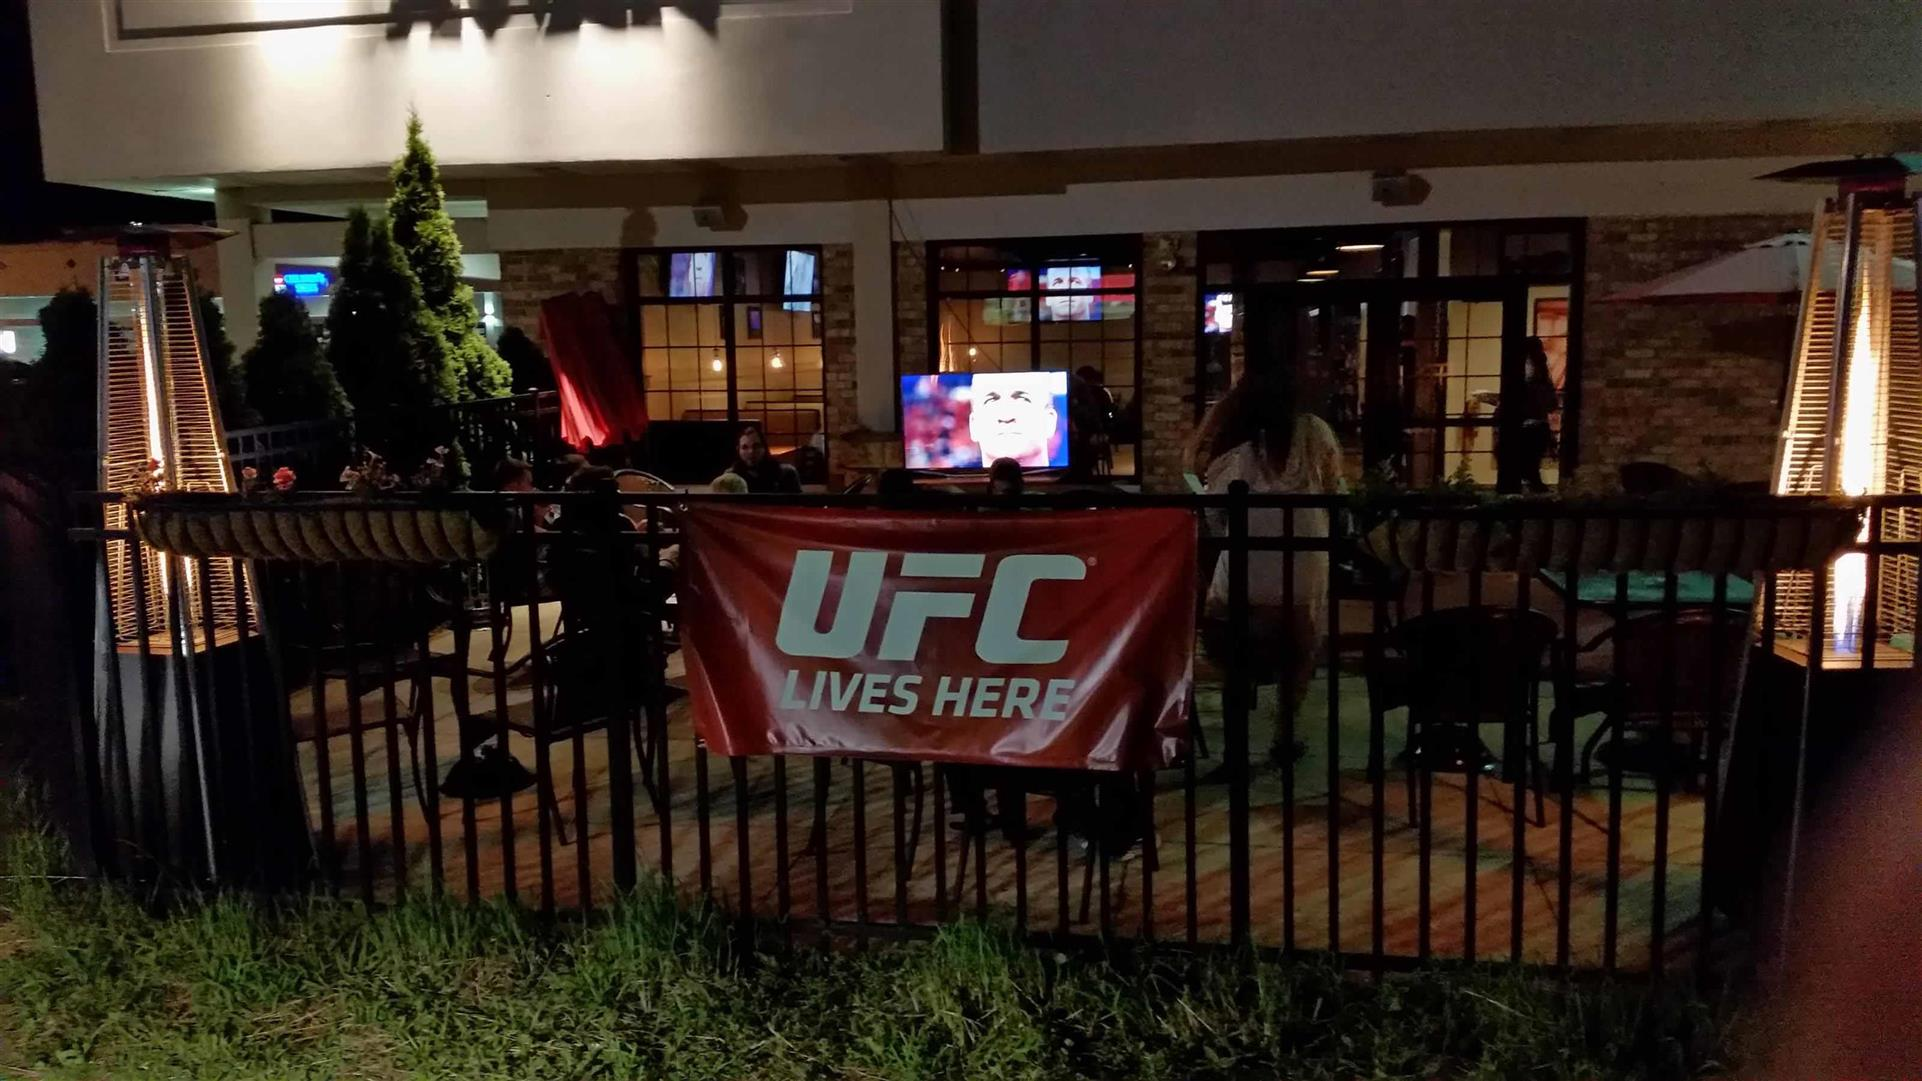 UFC Sign hanging over fence